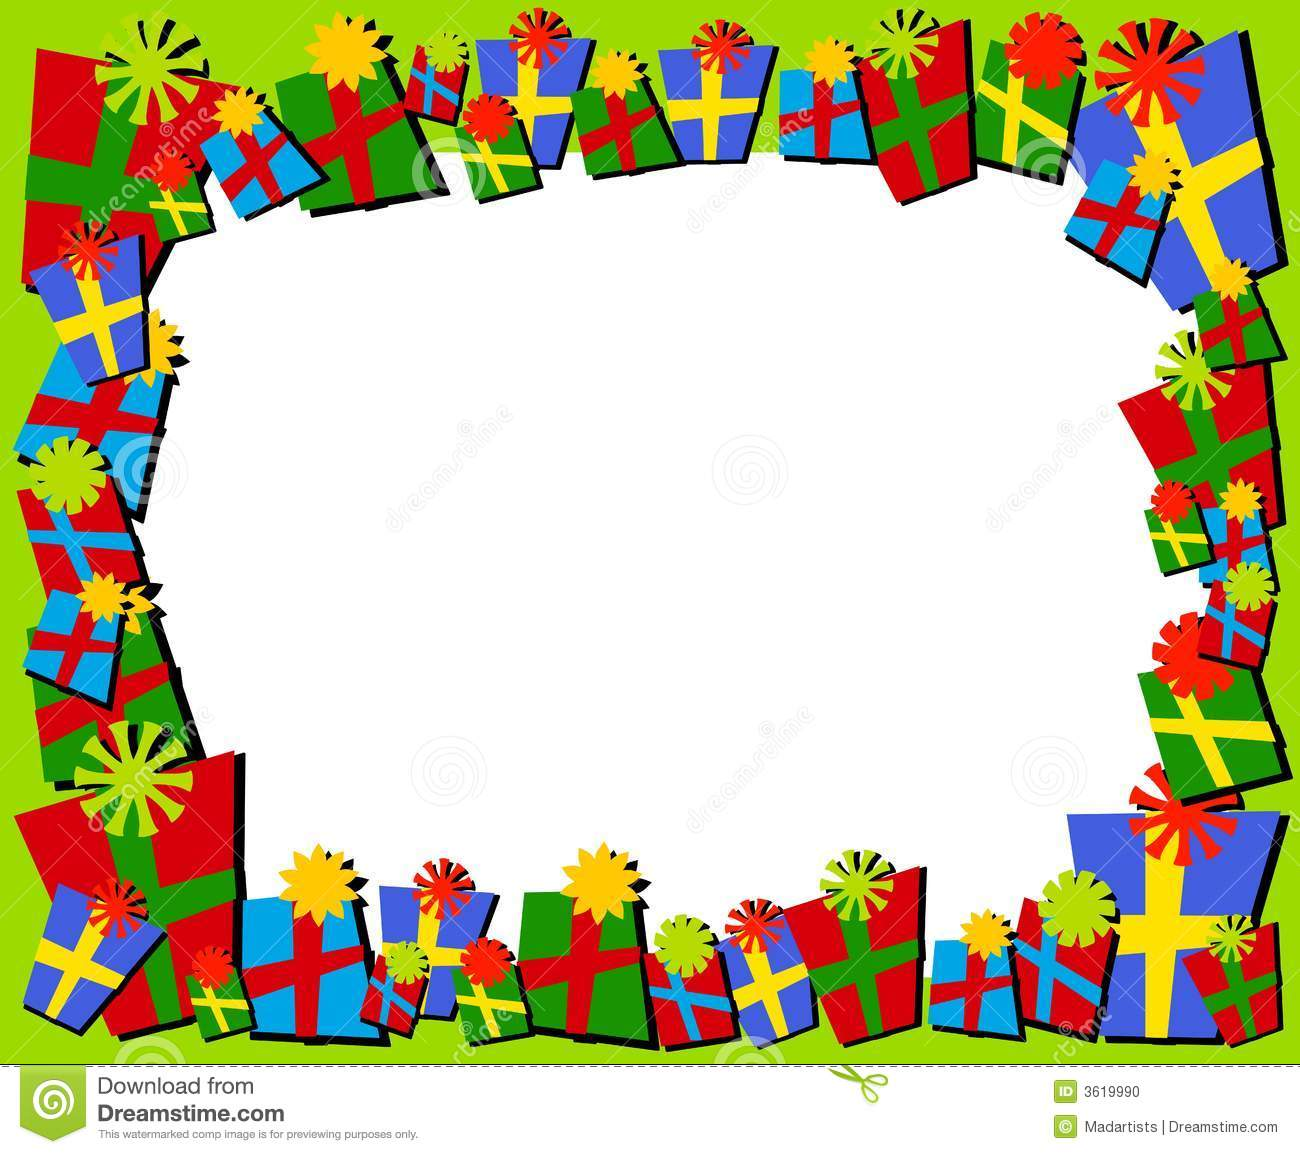 Christmas Toys Border : Cartoonish christmas gifts border or frame stock